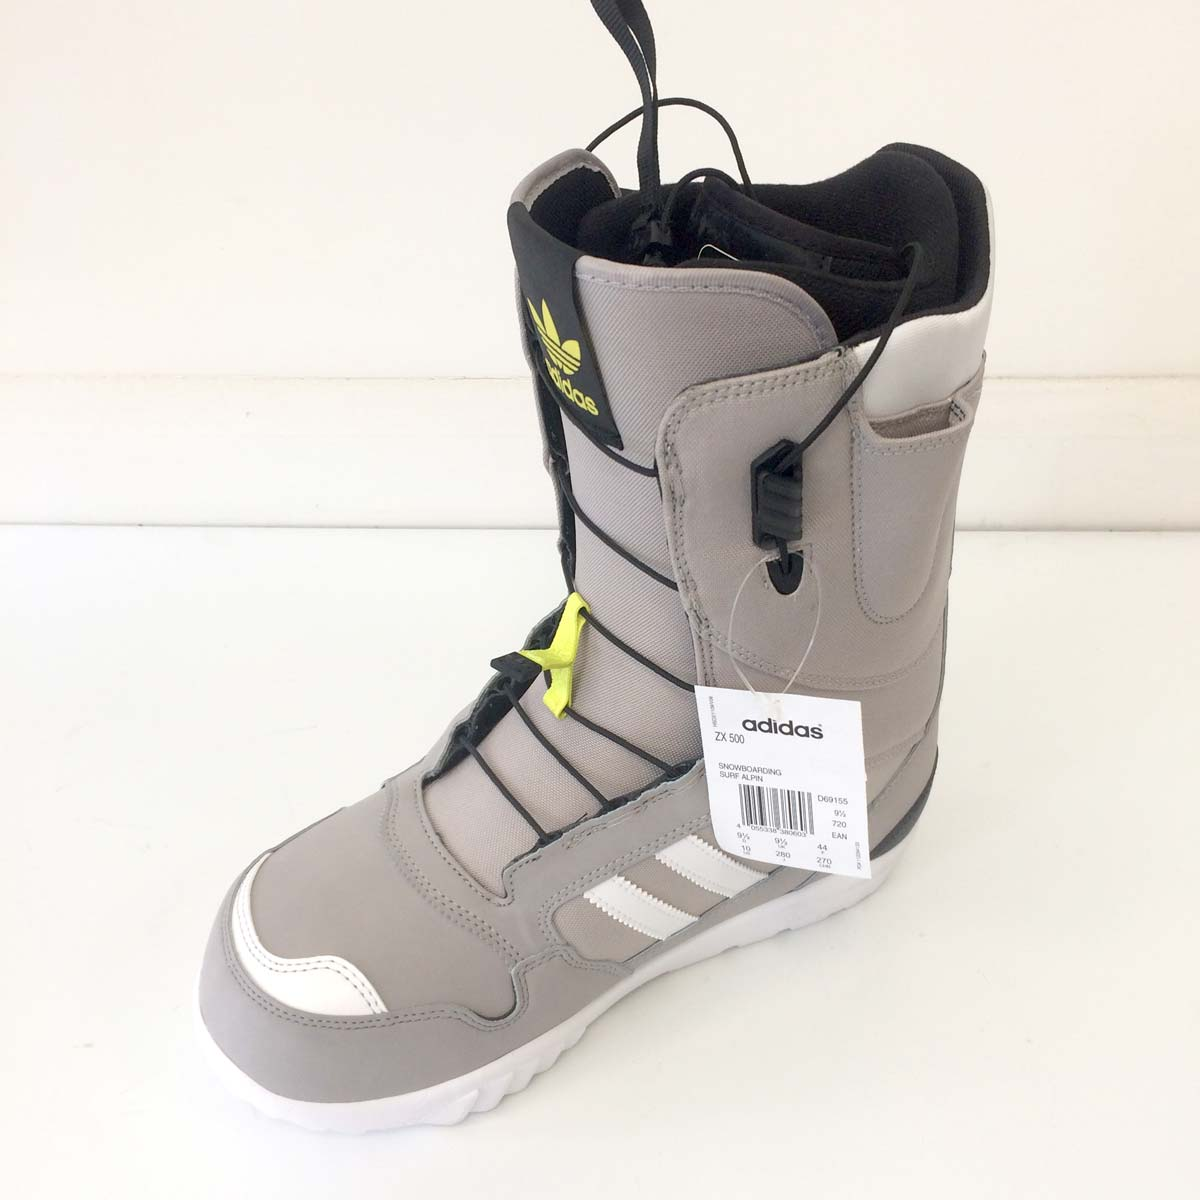 e899fde2e Adidas ZX 500 Snowboard Boots UK 9.5 – Never Worn – Perfect Condition –  10 10